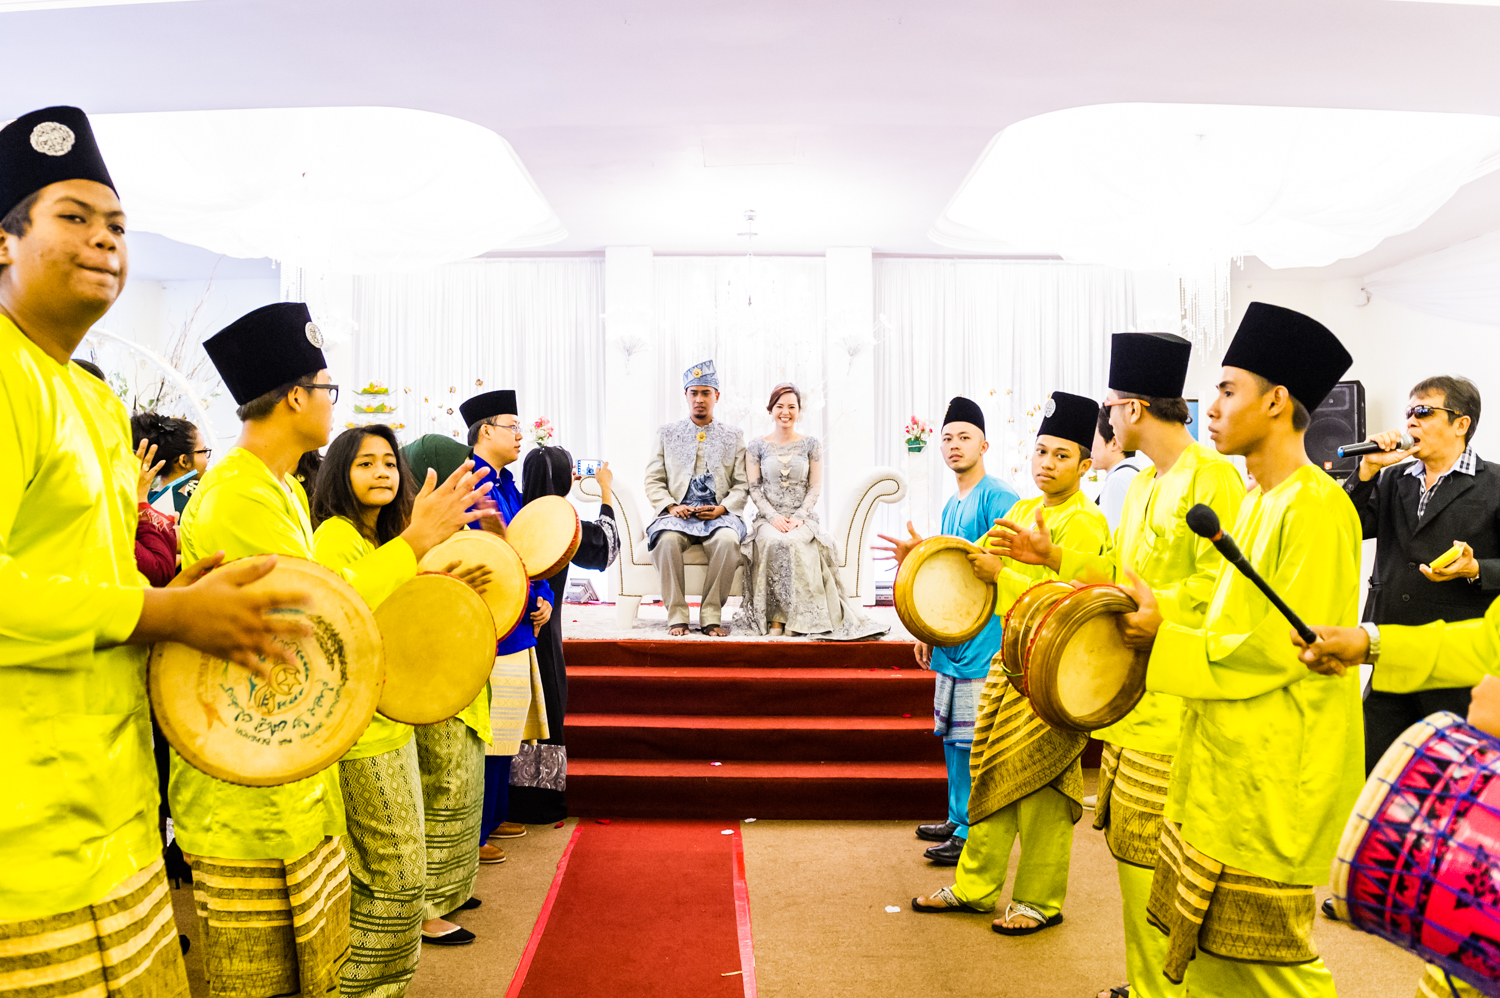 malay-wedding-celebration-d-pelangi-east coast-singapore-21.jpg